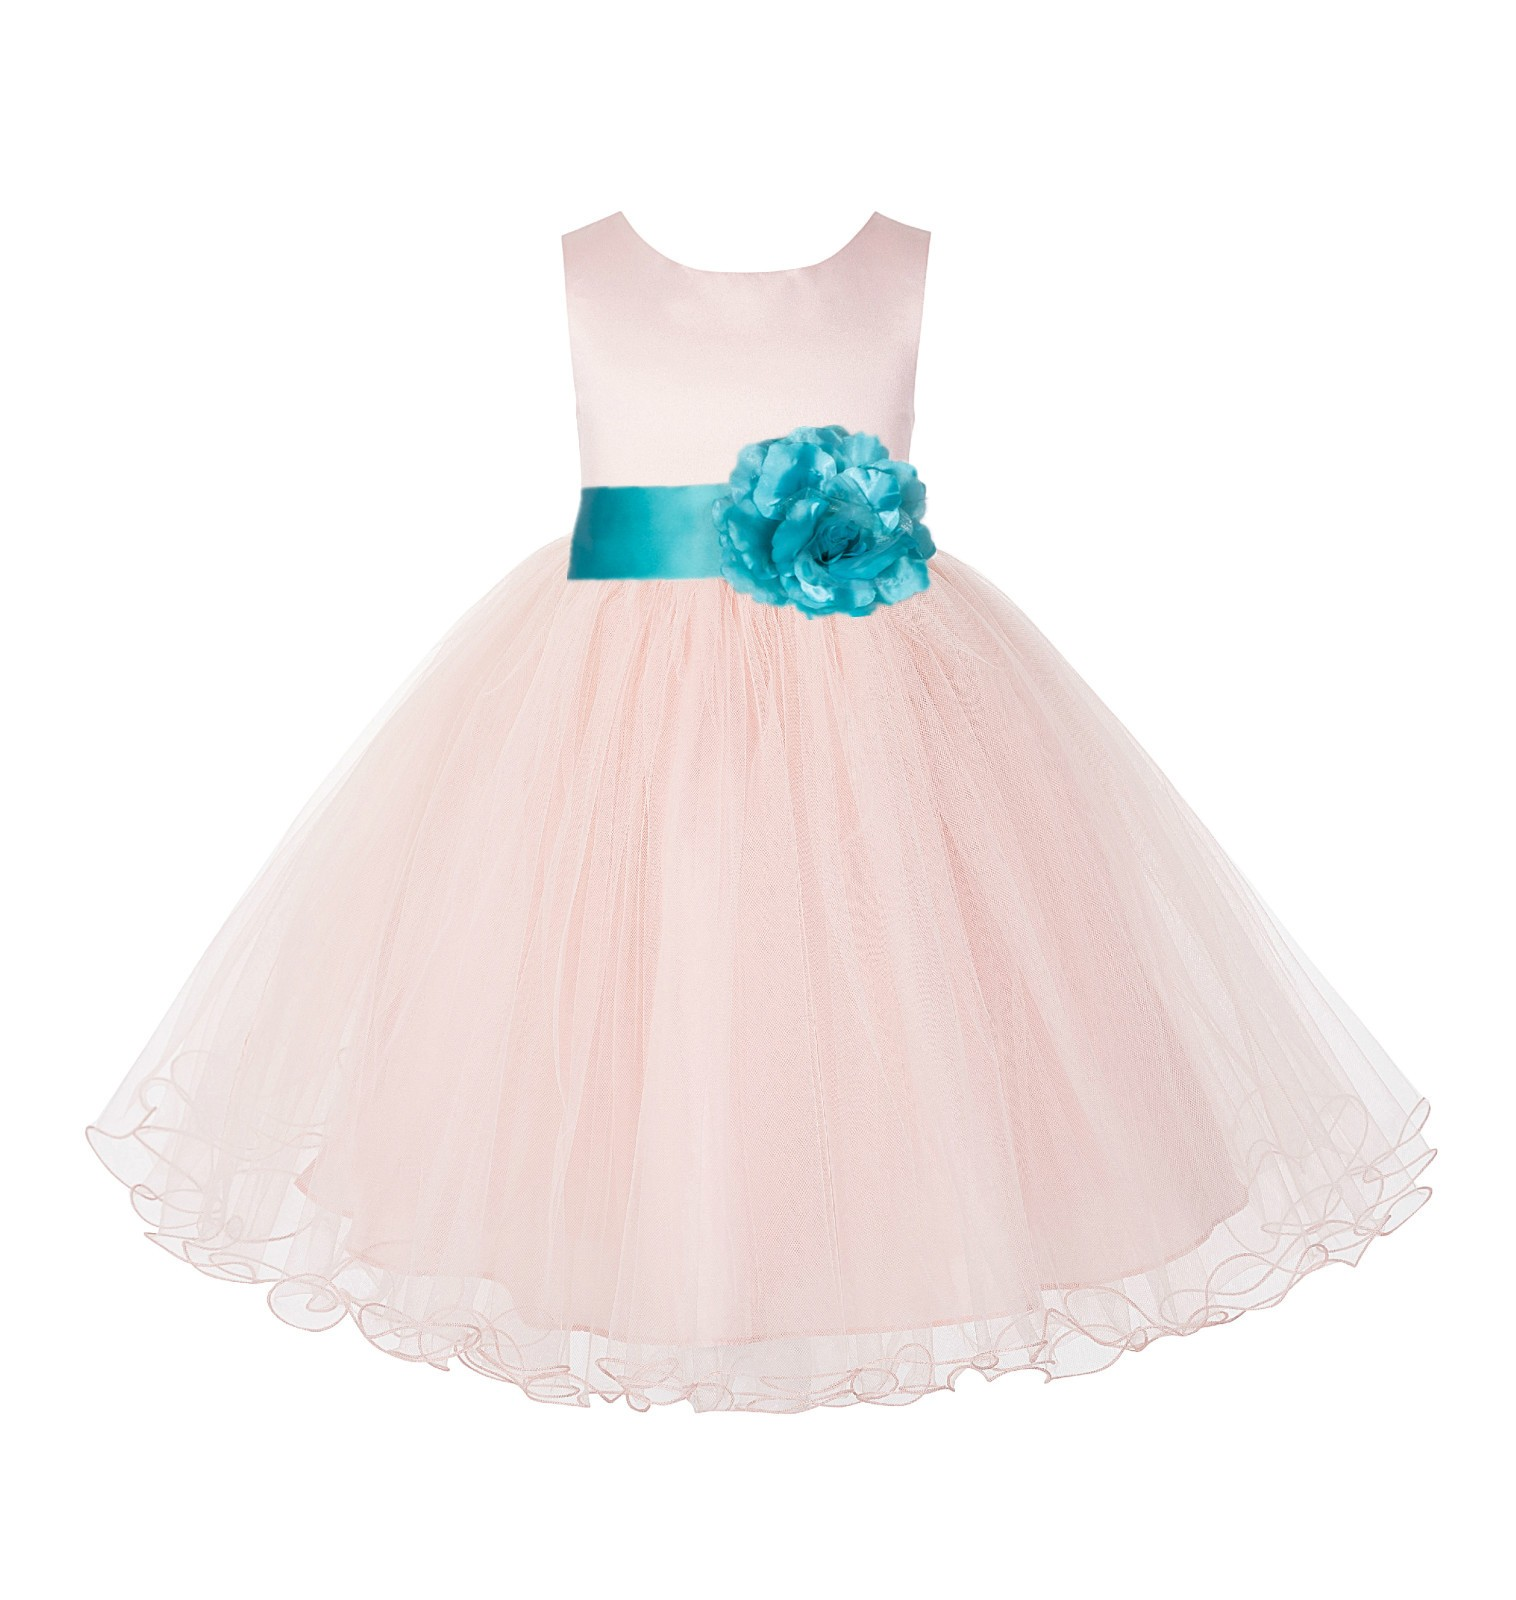 Blush PInk / Tiffany Tulle Rattail Edge Flower Girl Dress Wedding Bridesmaid 829T